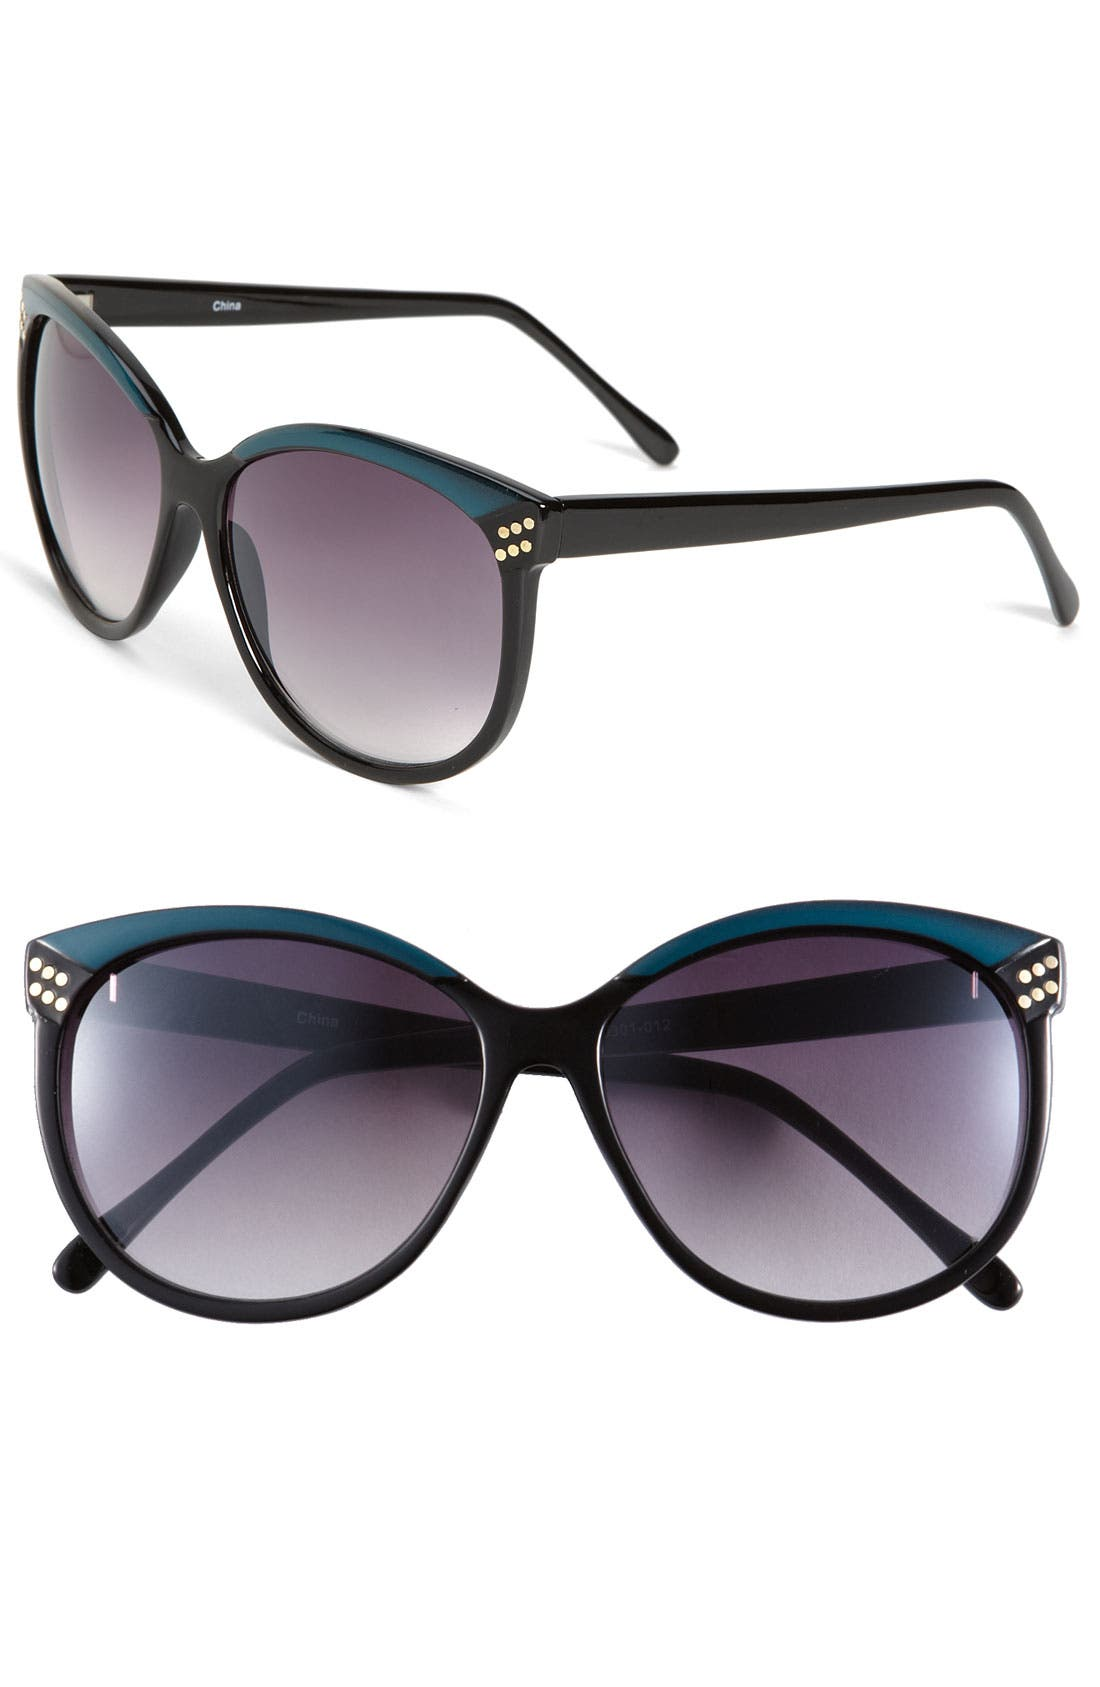 Main Image - Icon Eyewear 'Lily' Sunglasses